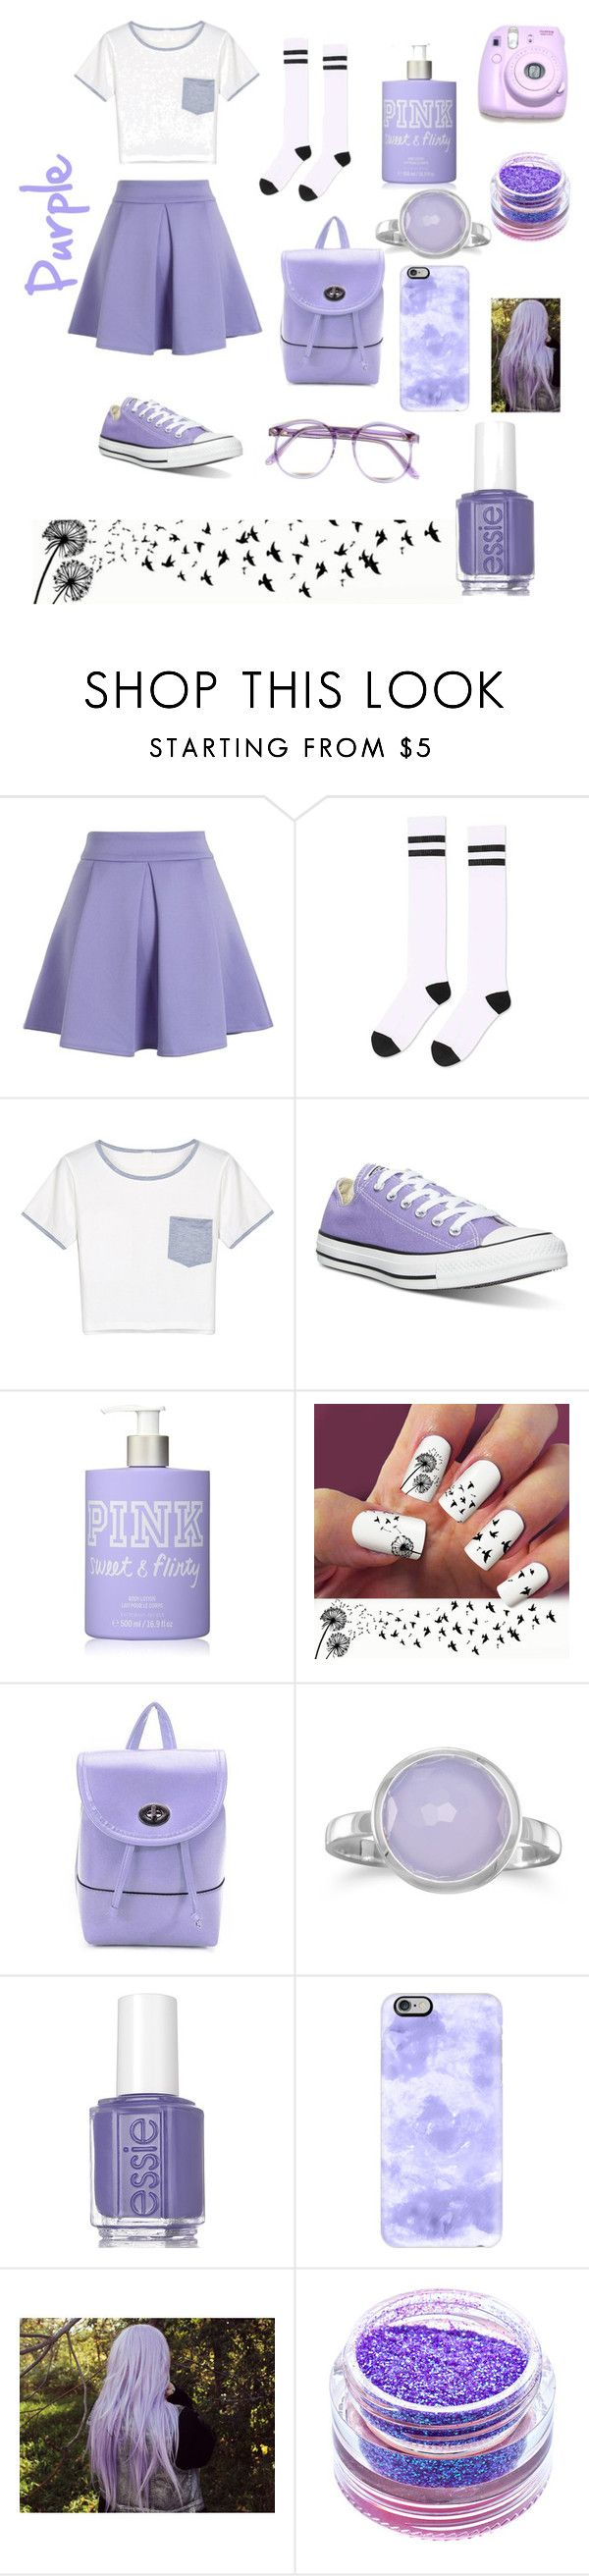 """""""purple for the purple contest"""" by libertyflawless ❤ liked on Polyvore featuring Chicwish, Topshop, WithChic, Converse, Victoria's Secret, BillyTheTree, Essie, Casetify, Polaroid and Warehouse"""